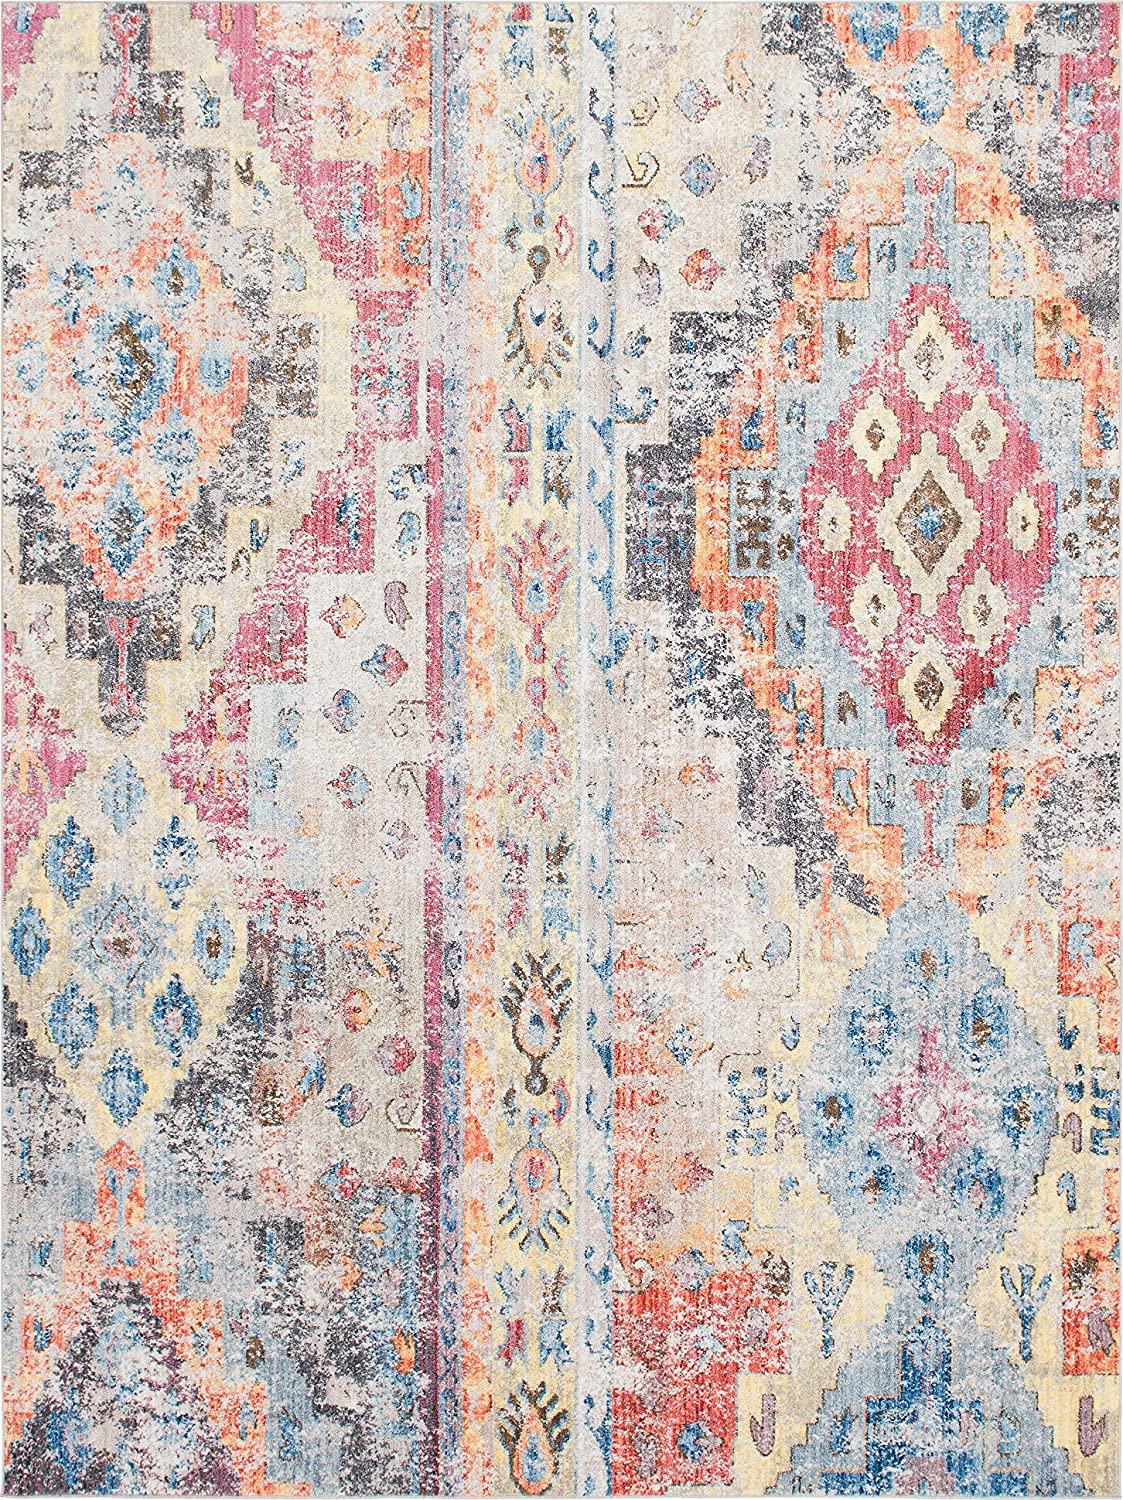 Unique Loom Basilica Collection Vintage Bohemian Traditional Colorful Multi Runner Rug 3143080 2 x 6